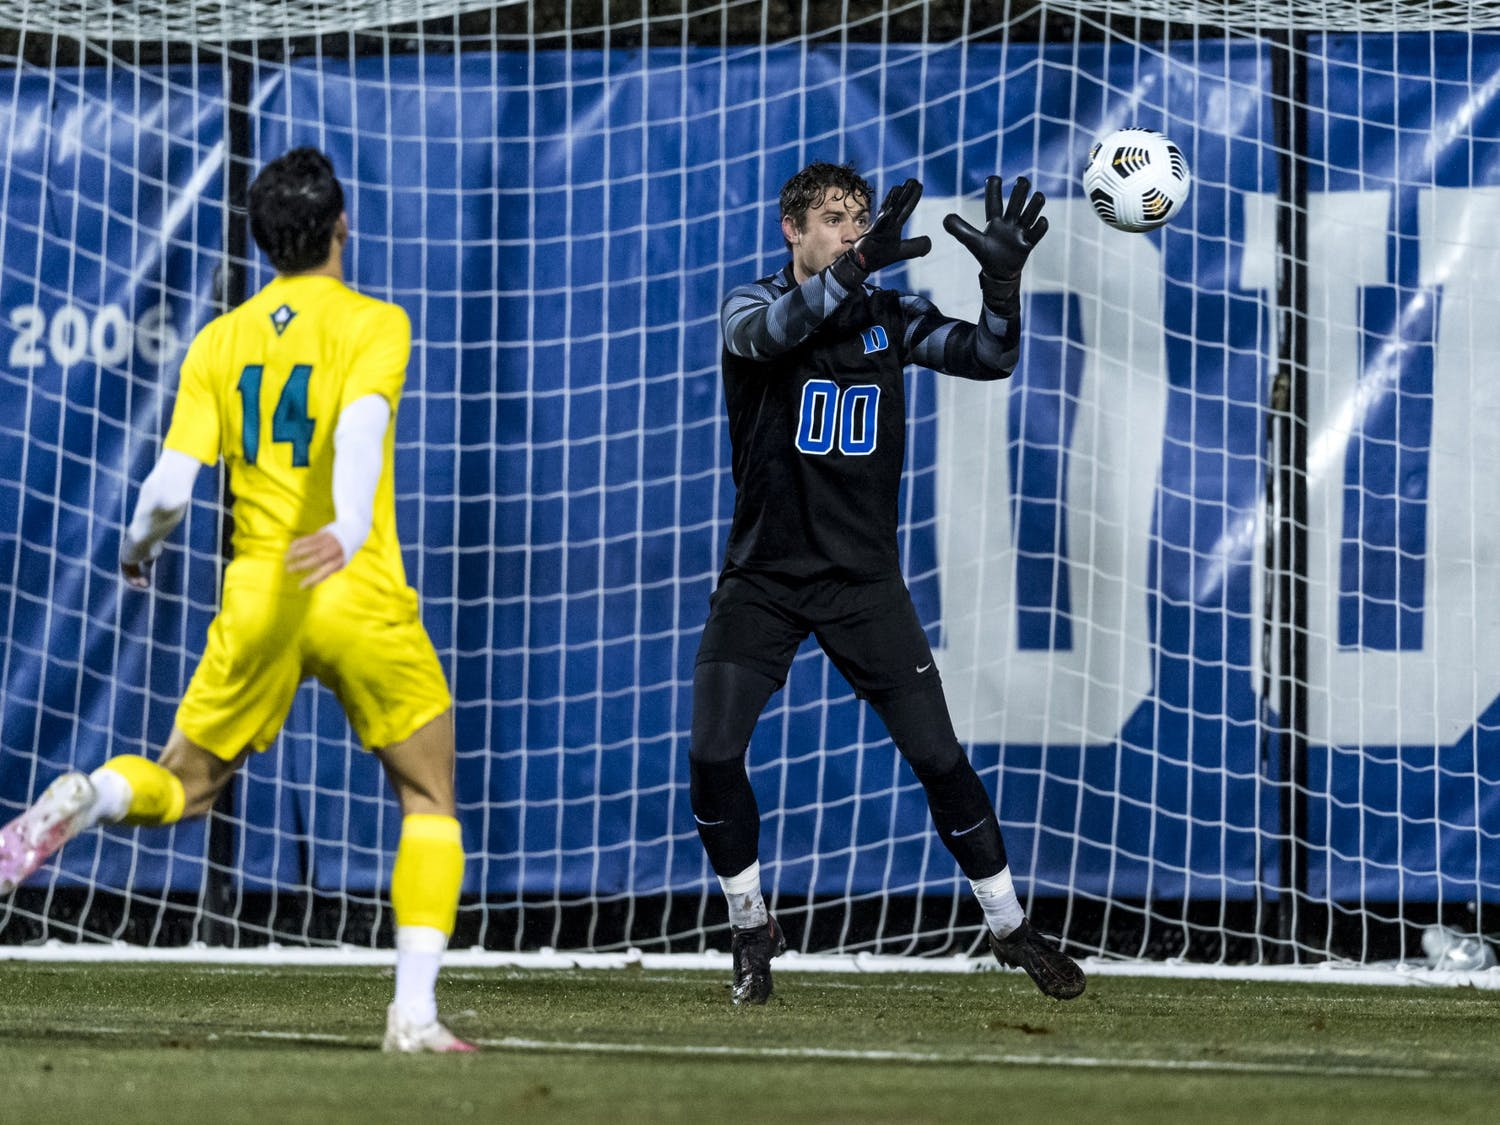 Hamill made multiple key saves down the stretch for the Blue Devils.